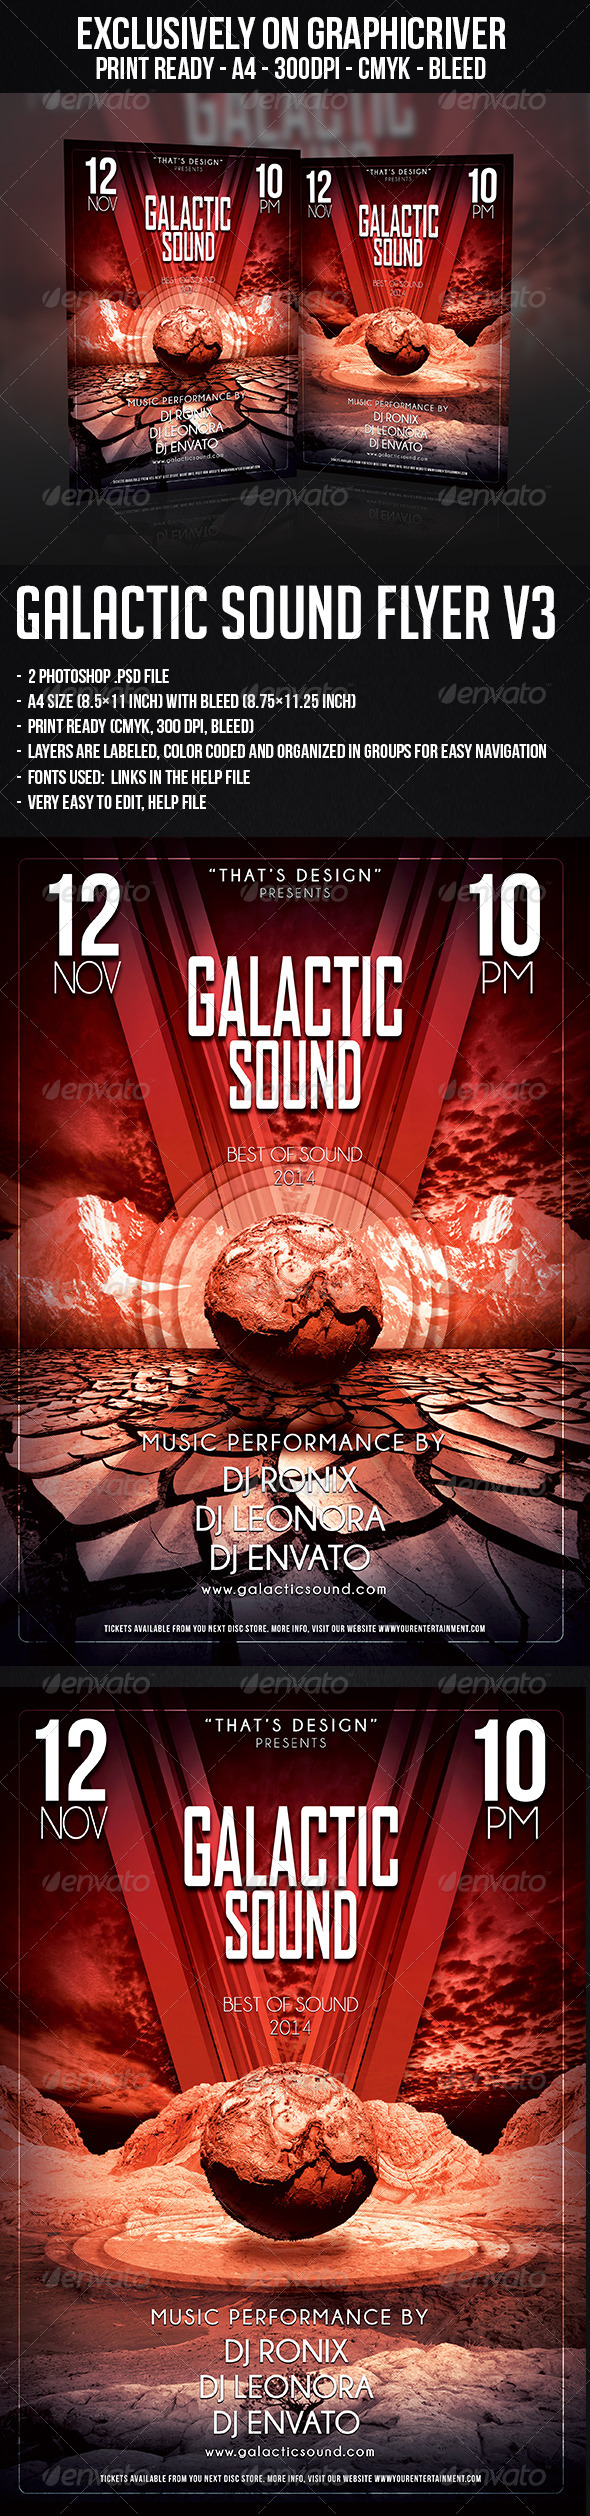 GraphicRiver Galactic Sound Flyer V3 6148414